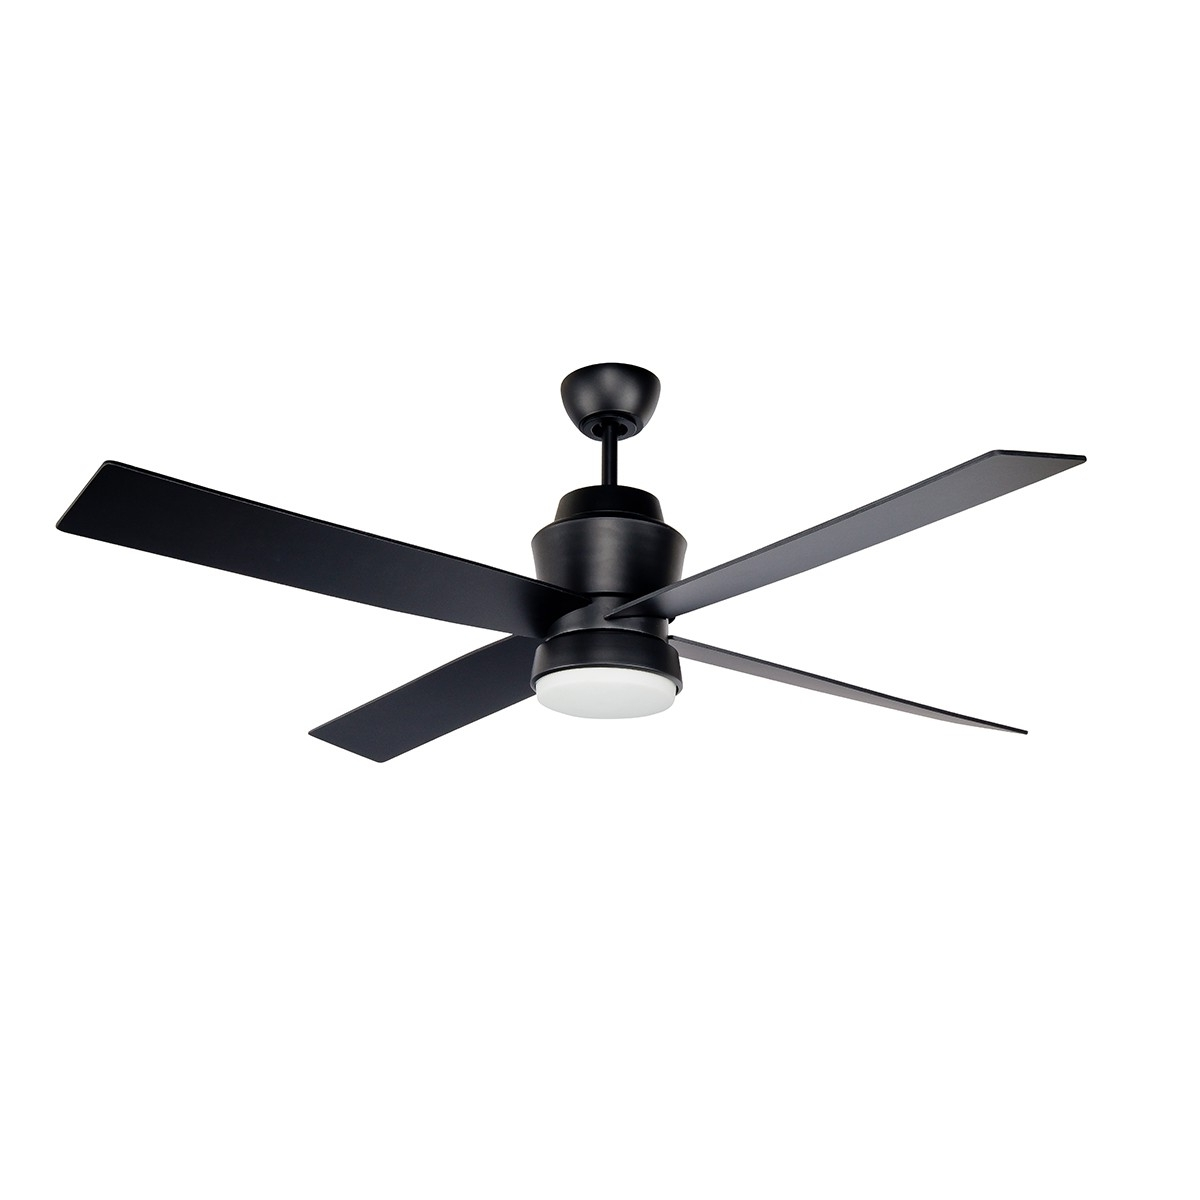 Outdoor Ceiling Fans For Wet Locations Regarding Newest Prologue Outdoor Ceiling Fan :: Stori Modern (View 11 of 20)